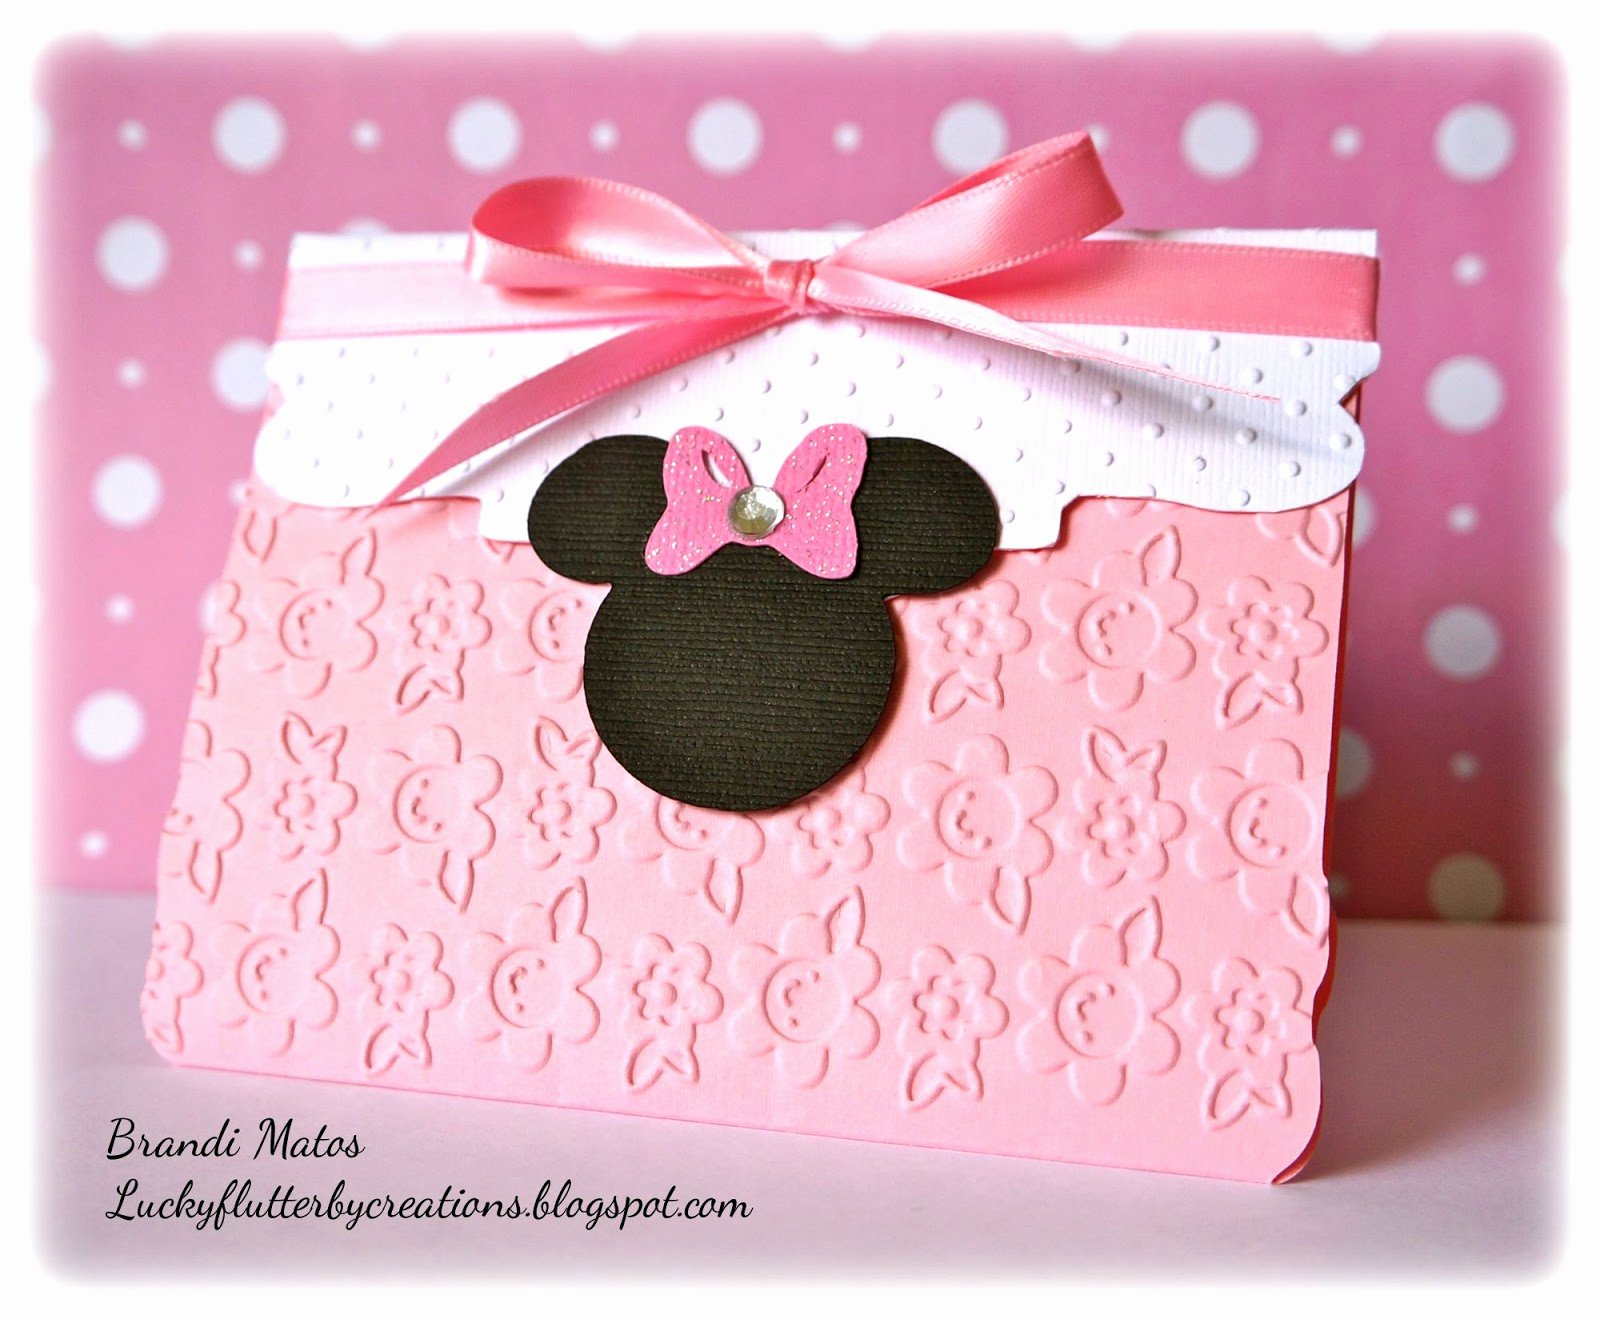 Homemade Minnie Mouse Invitations Inspirational Lucky Flutterby Creations Handmade Minnie Mouse Invitations